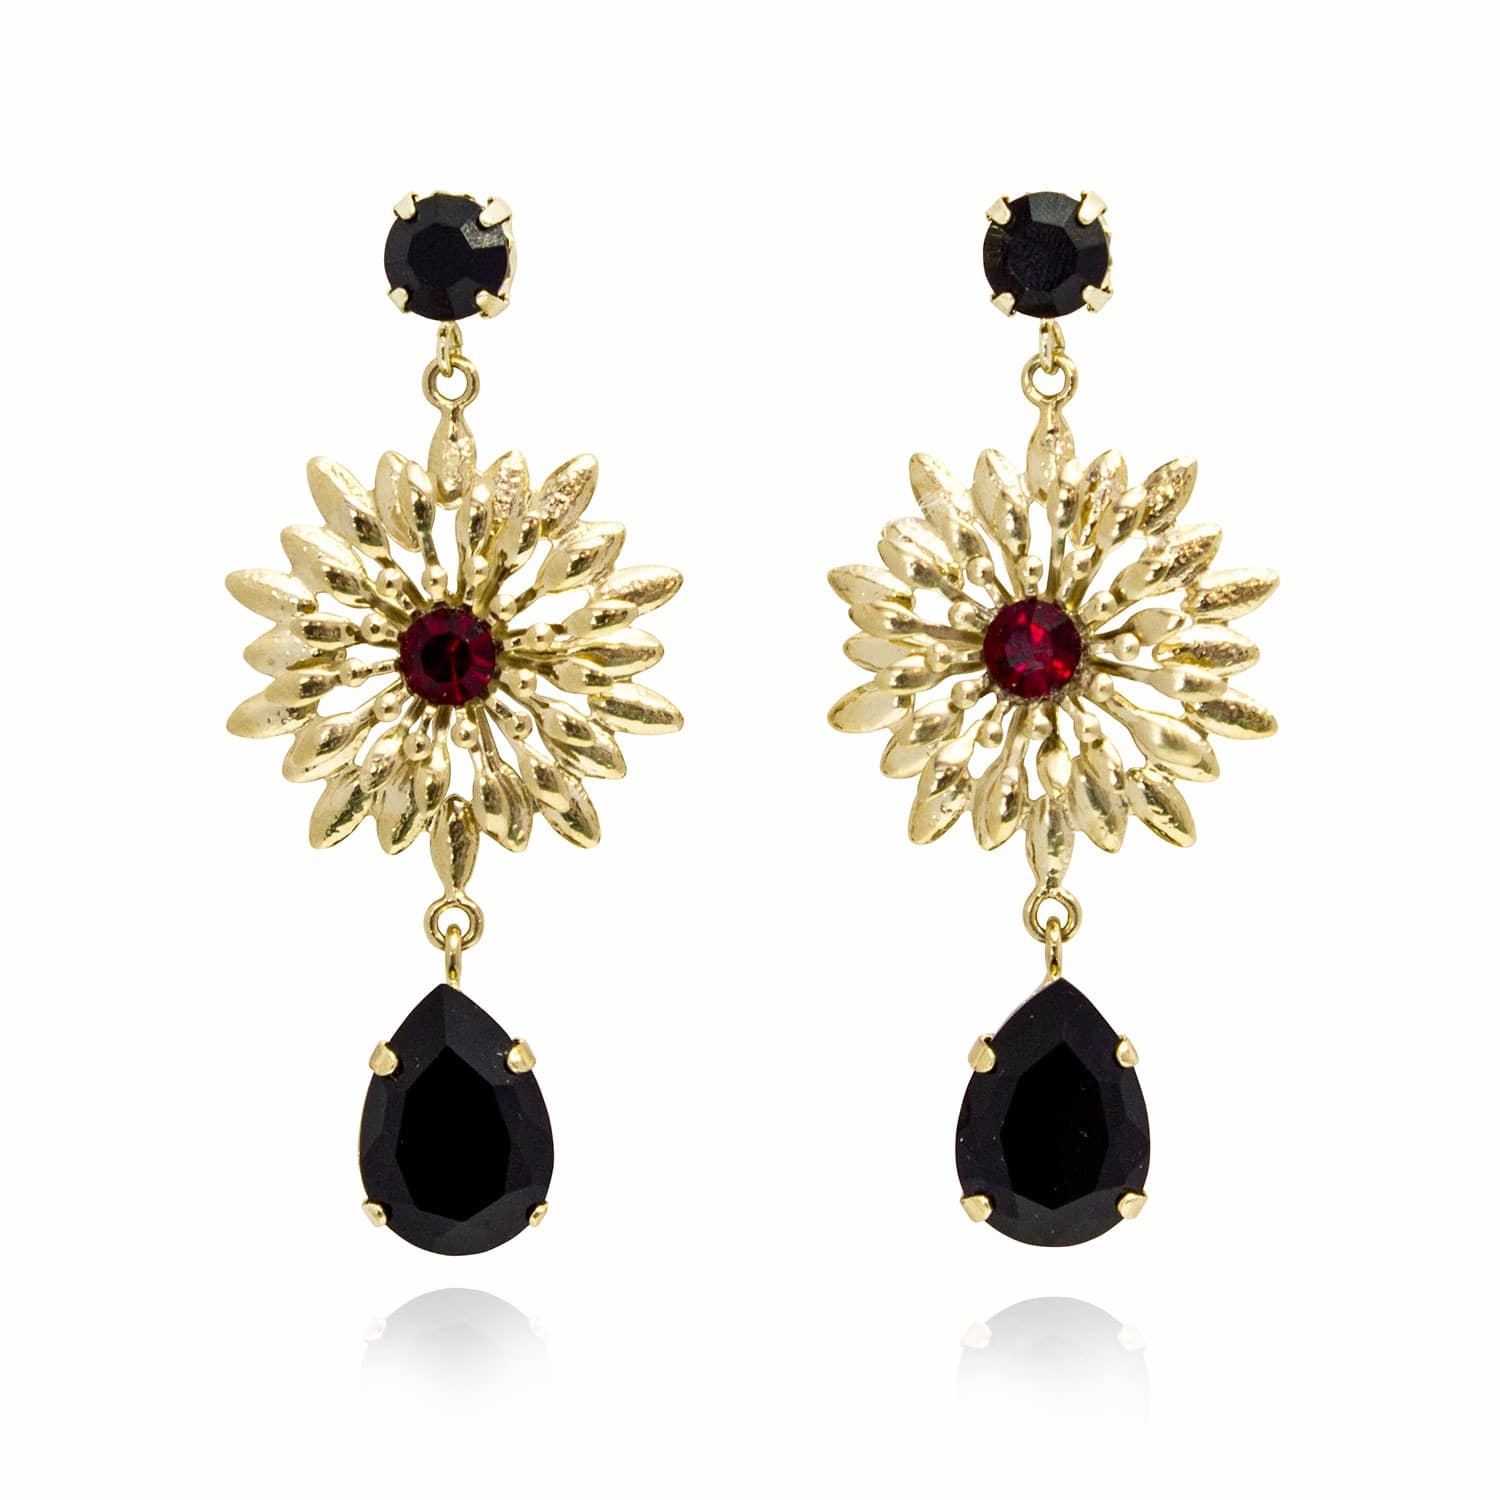 ccada1ff8 Granada Drop Earrings